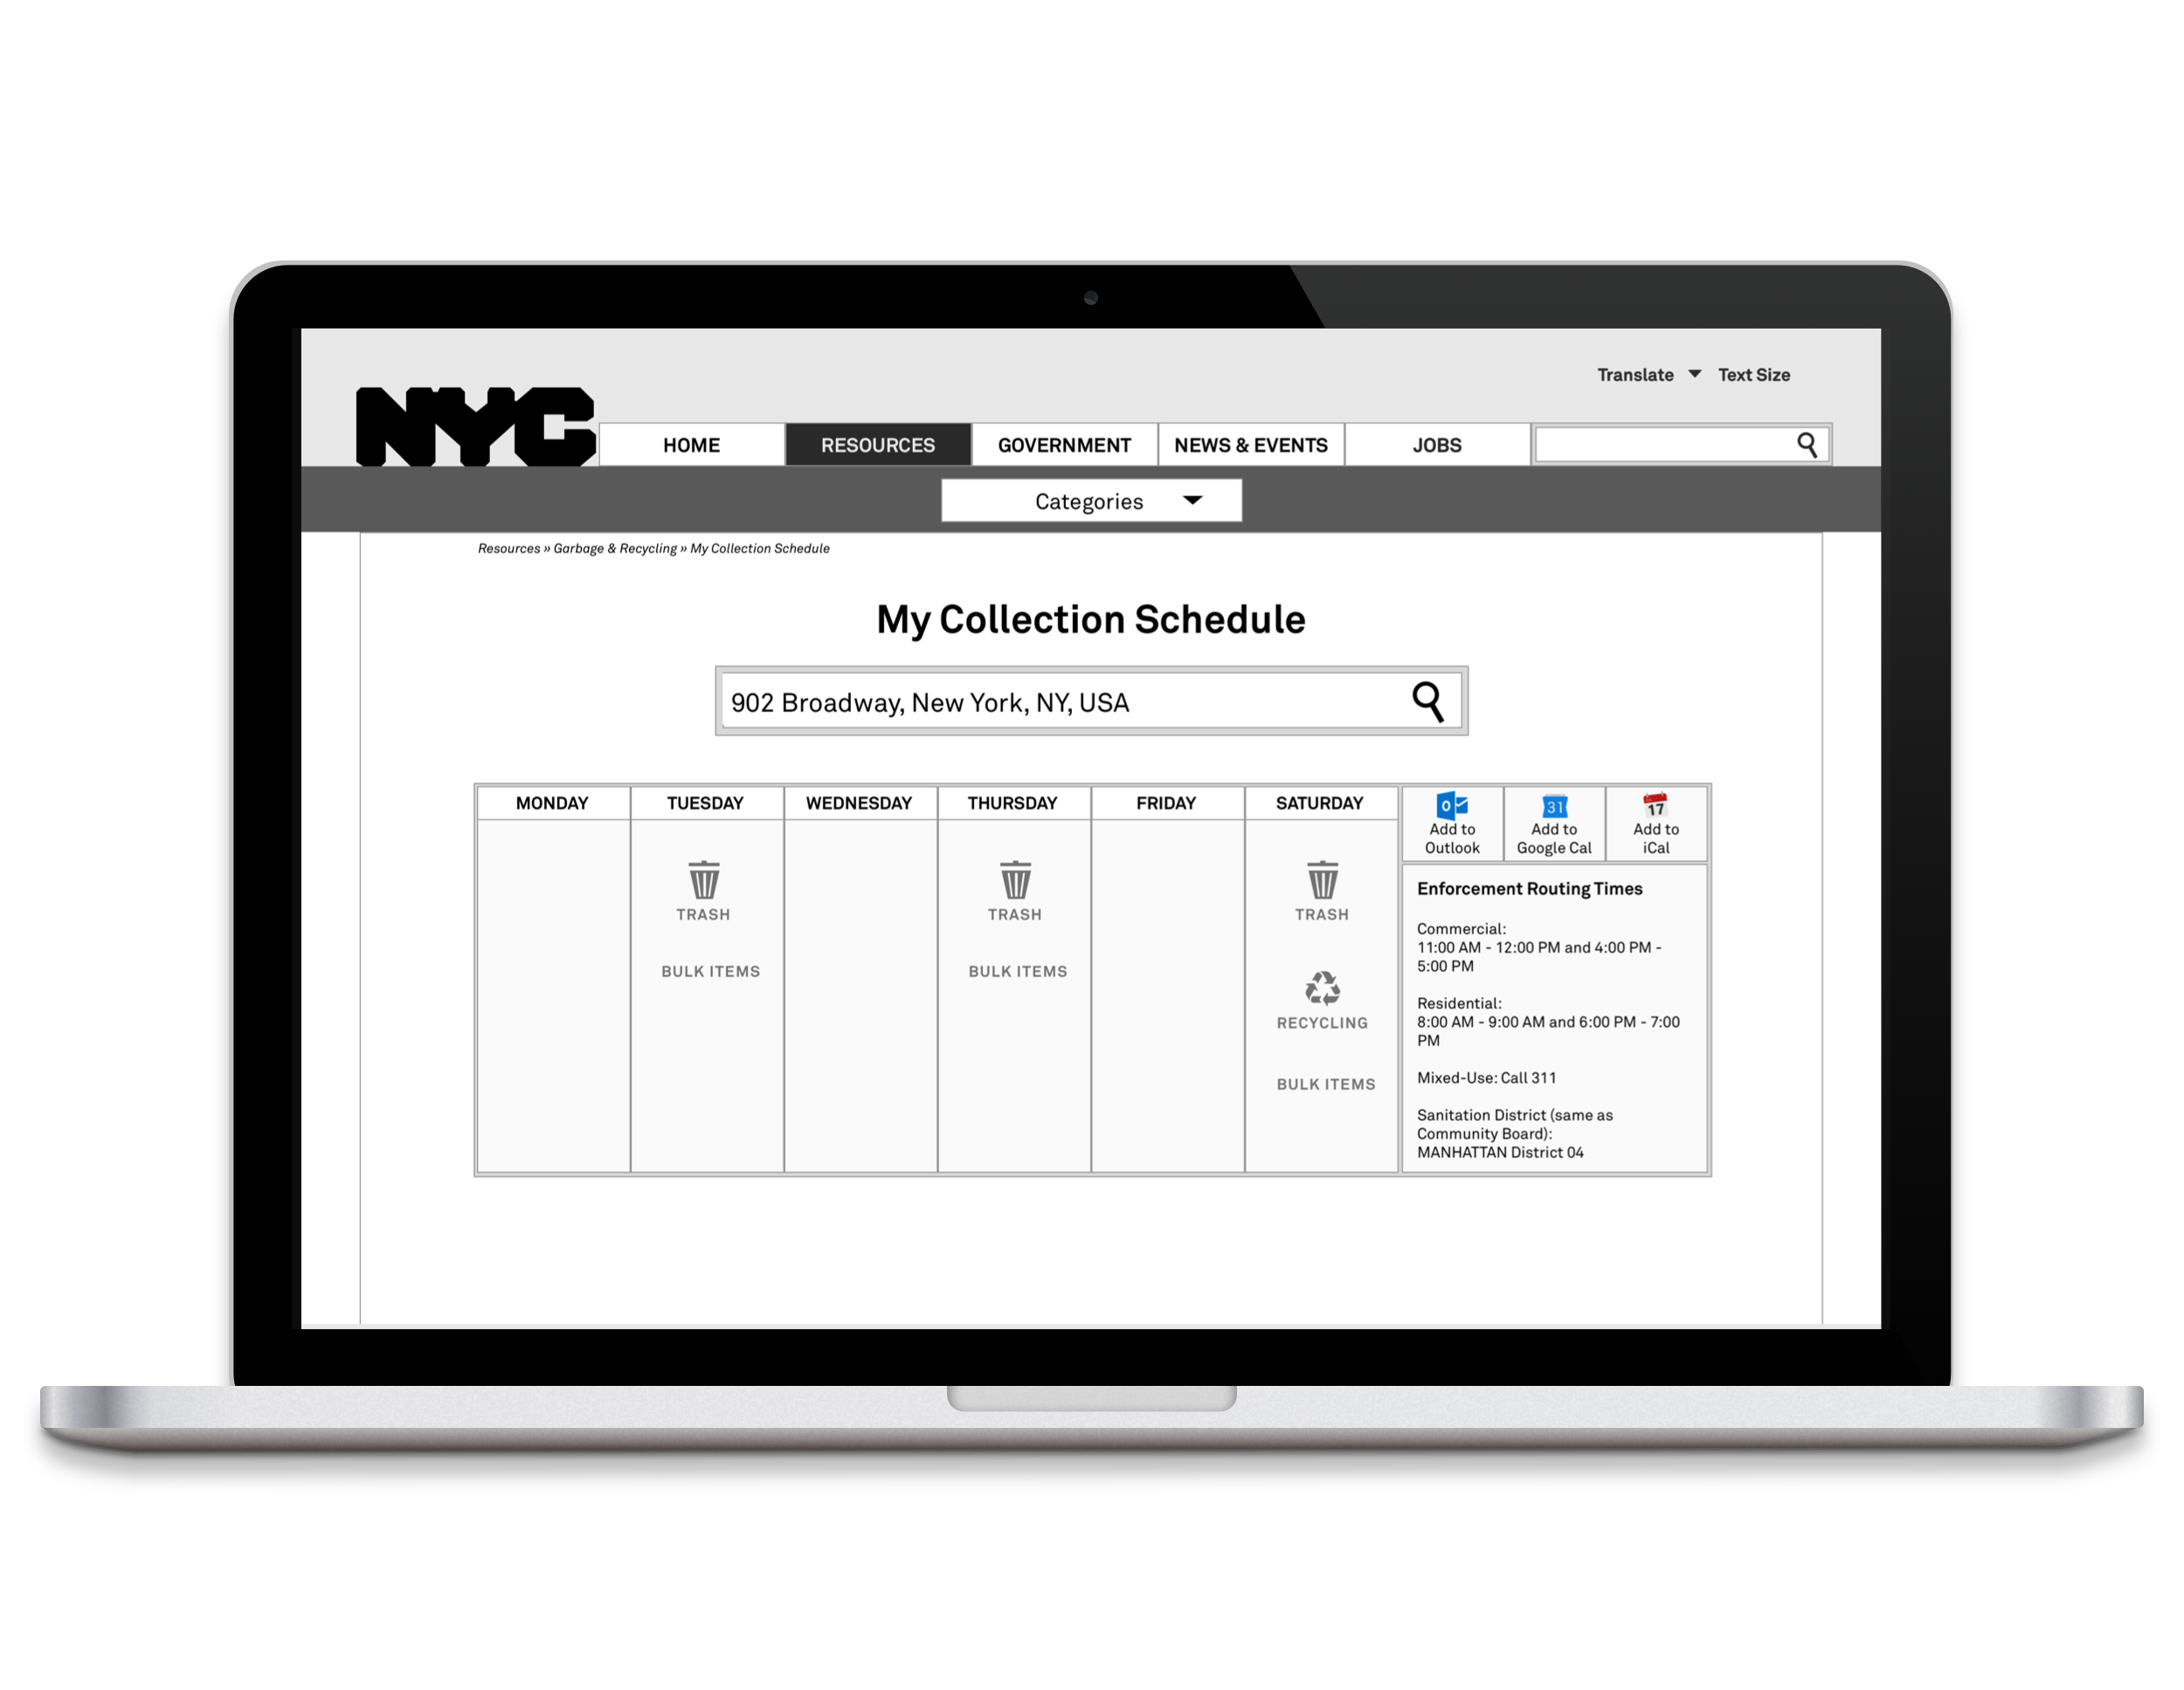 Brief - New Yorkers should be able to access their collection schedules, know which garbage to bring out on certain days, and add pick up dates to their calendars. However, the current NYC government website is difficult to navigate and full of redundancies.I redesigned the NYC website's information architecture to make Garbage & Recycling collection schedules more easily accessible.Scroll down for highlights, or read the full case study on Prototypr: